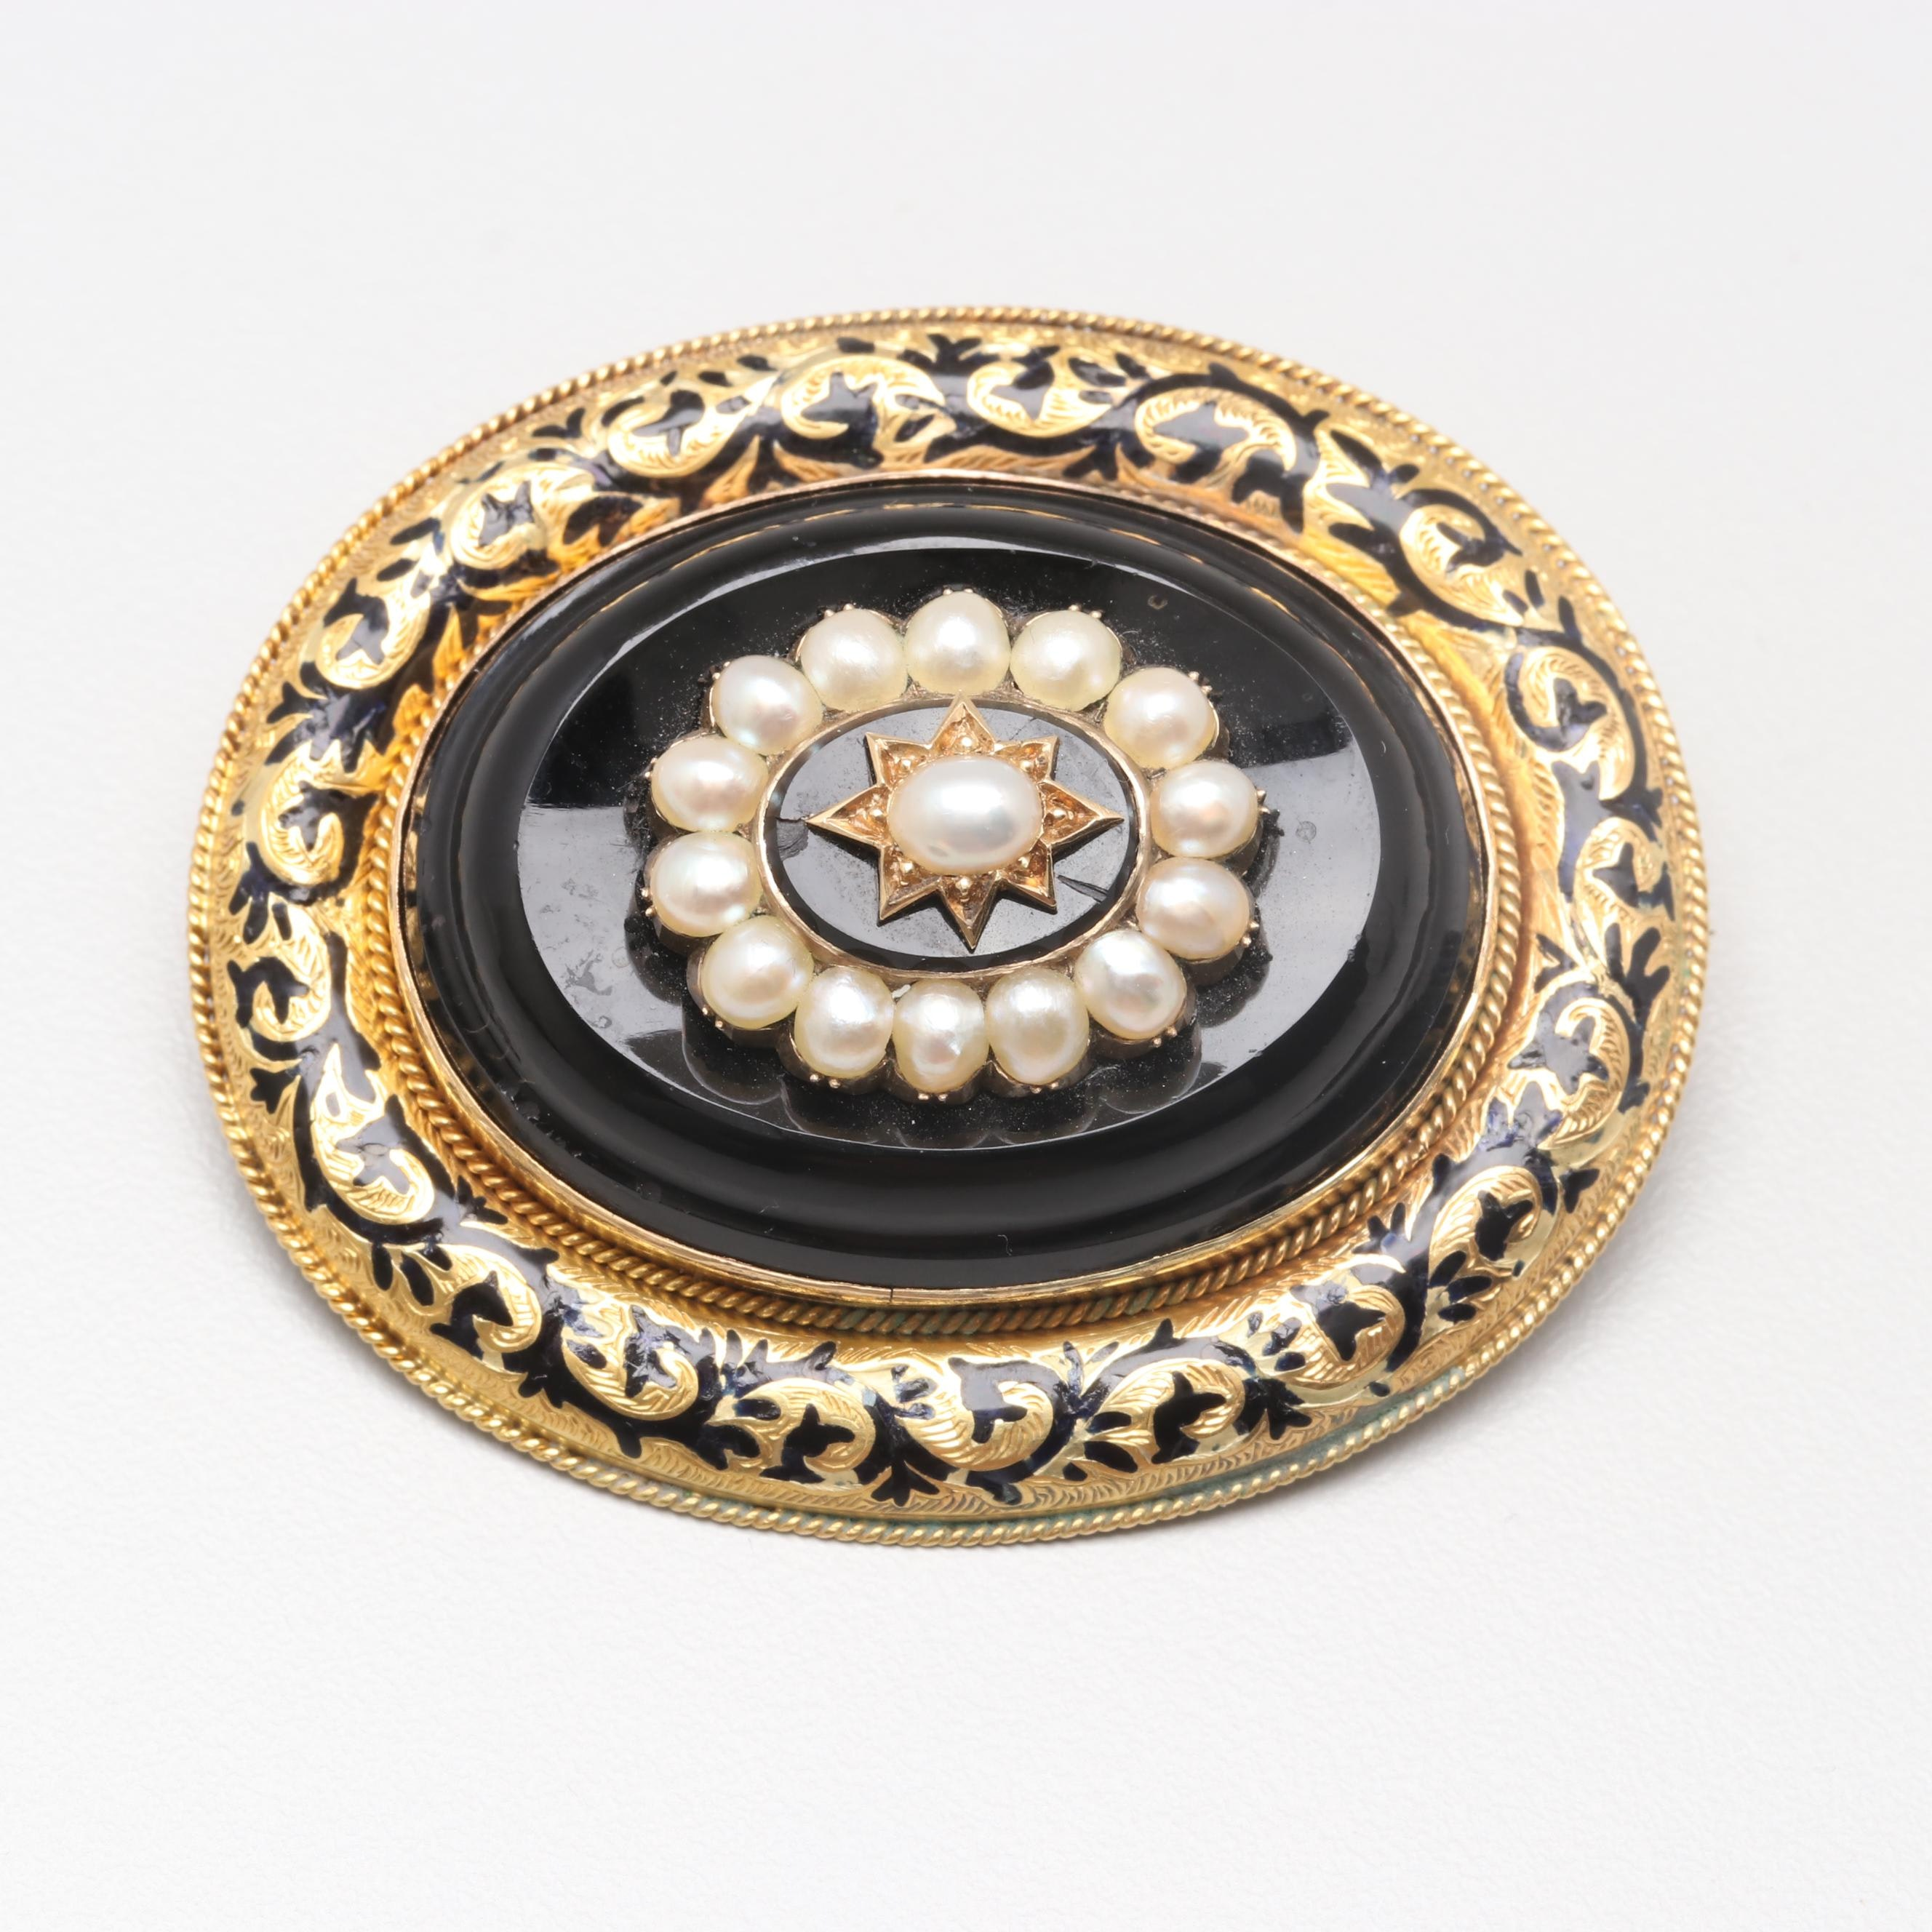 Victorian 14K Yellow Gold Cultured Pearl, Black Onyx and Enamel Mourning Brooch